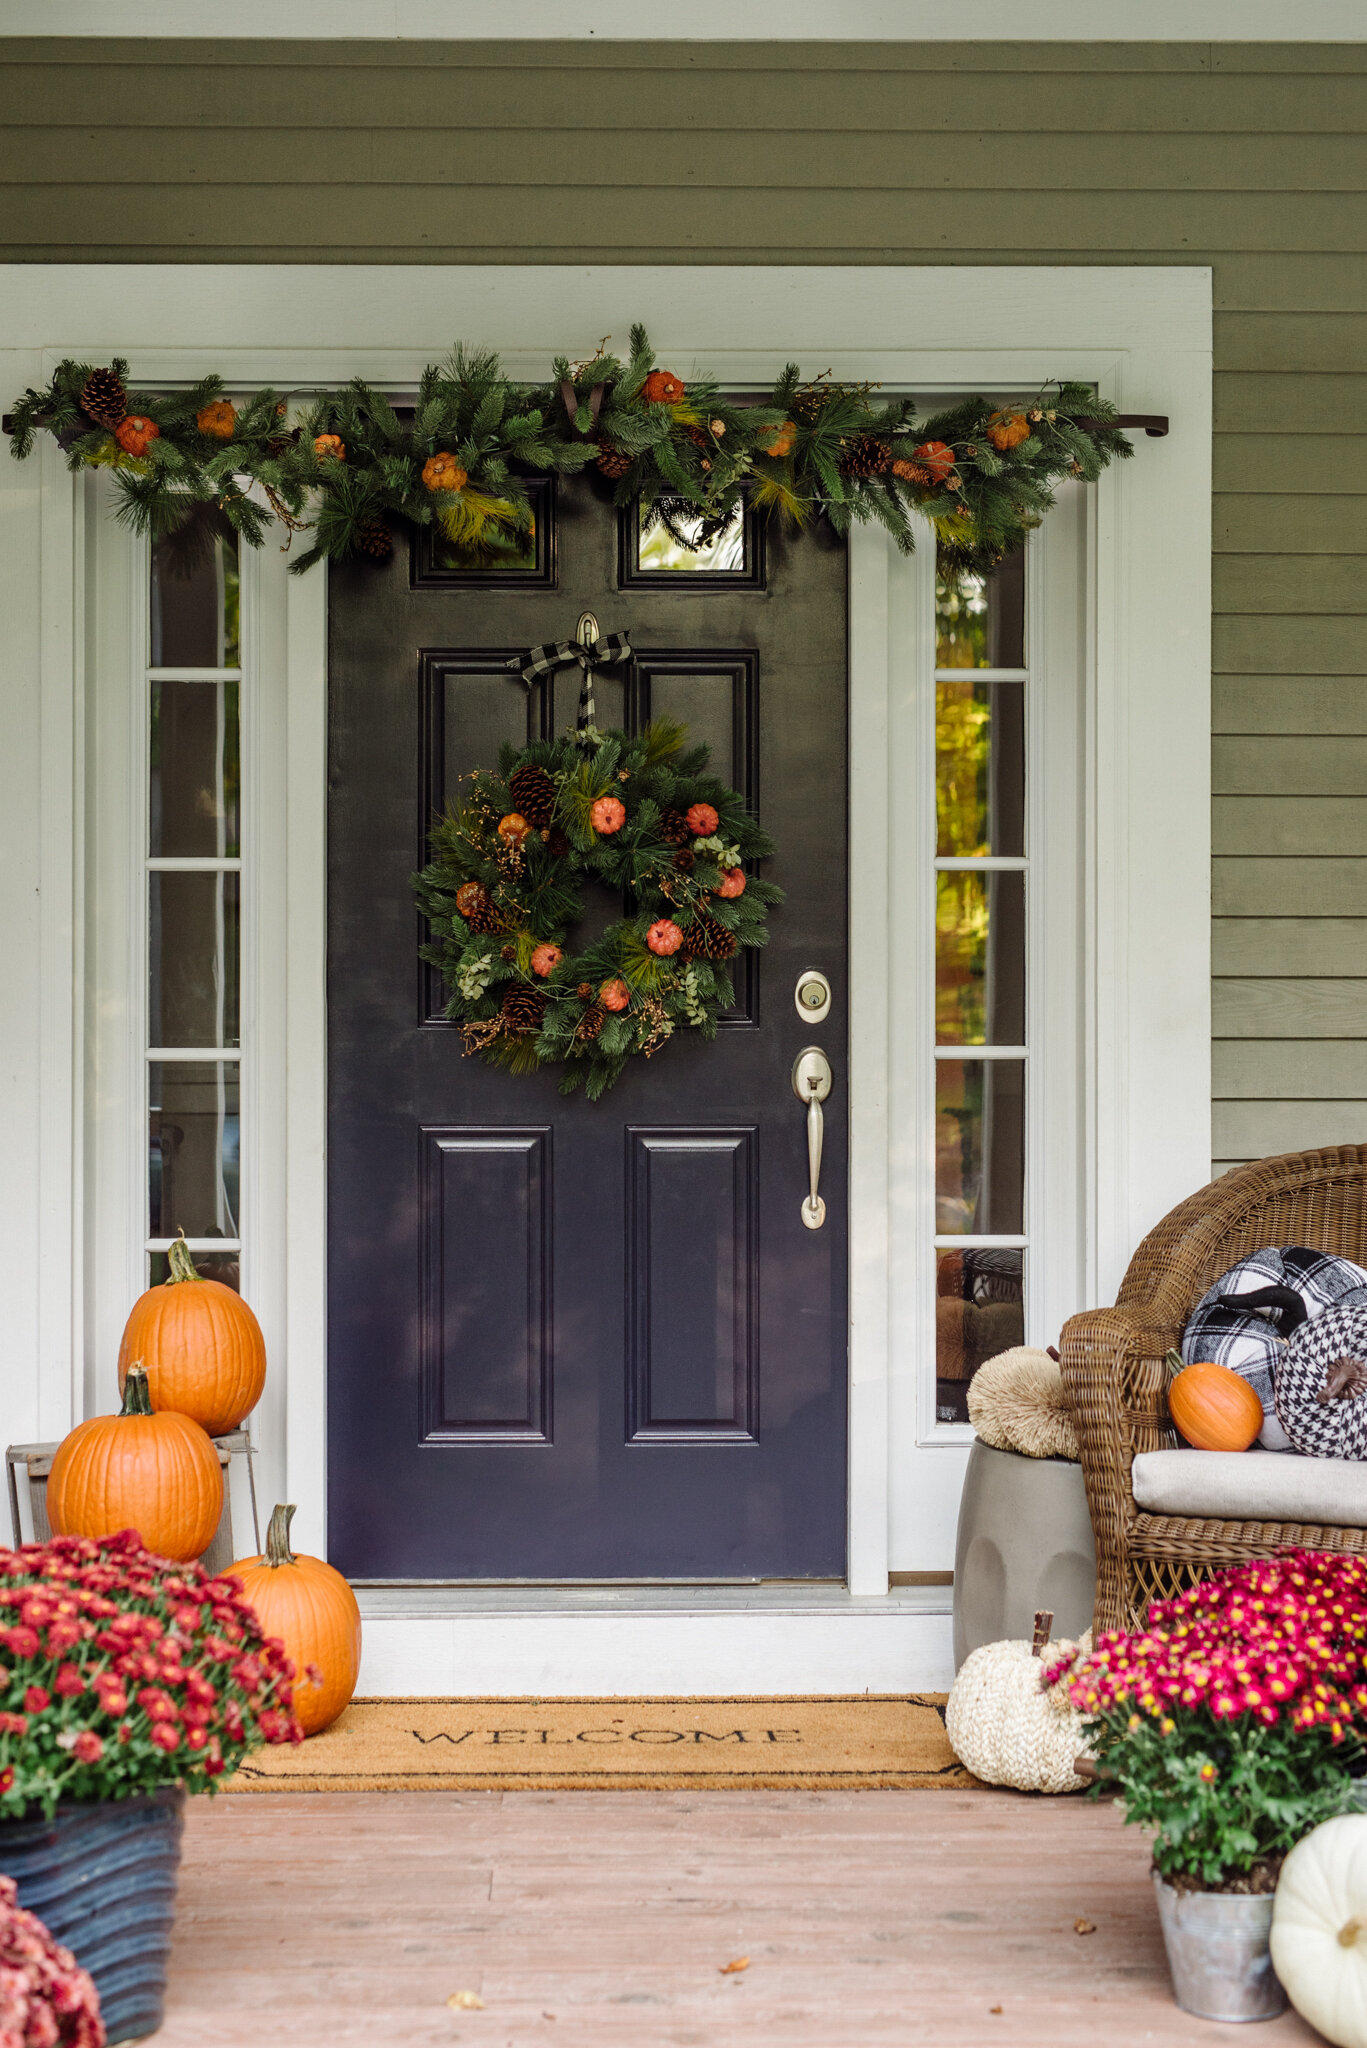 Rachel's front porch decorated with a mix of real and faux pumpkins, fall mums, and  Classic Fraser Fir Festive Wreaths and Garland